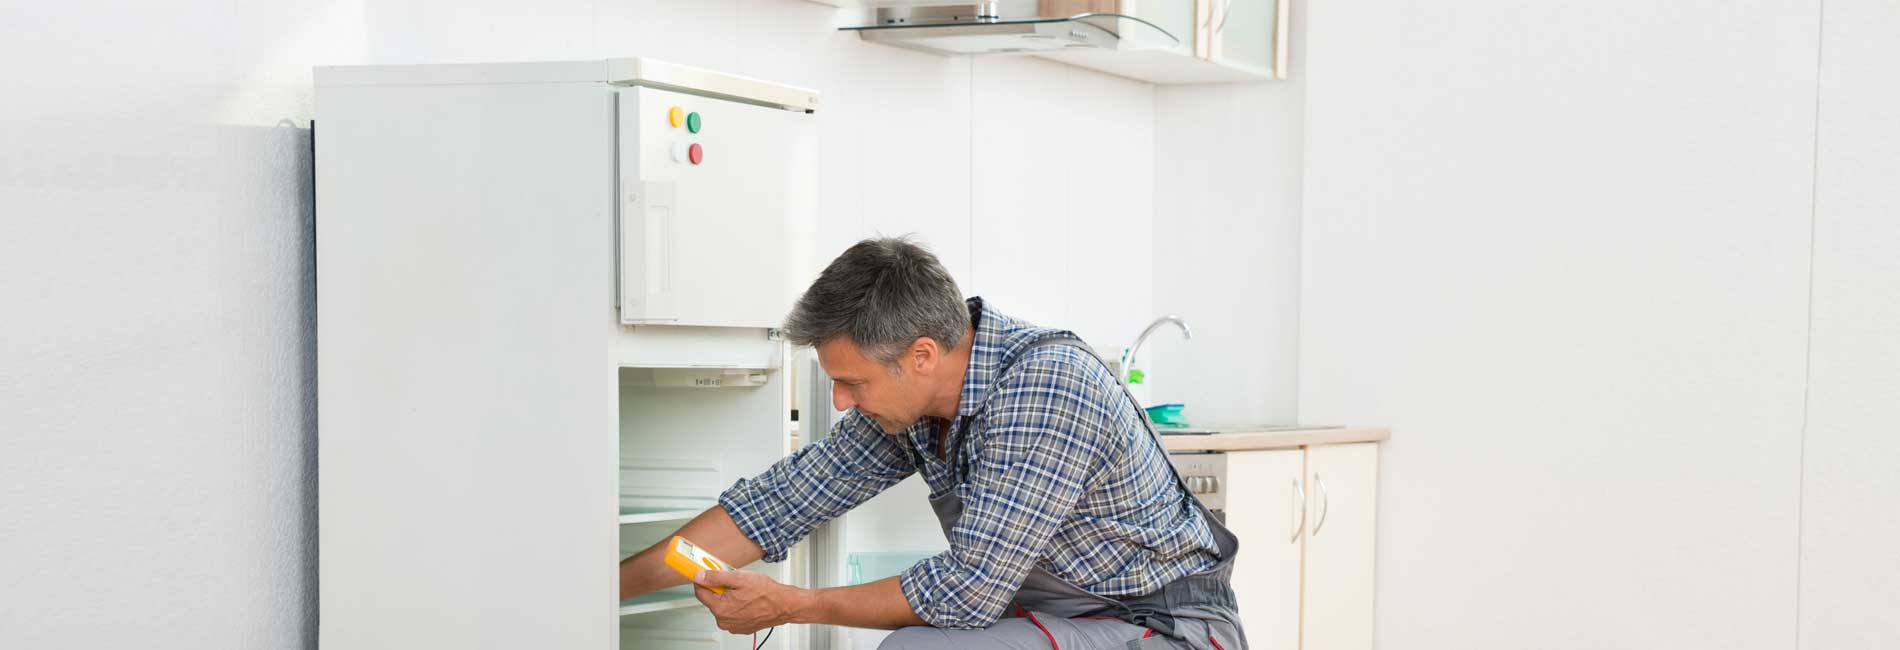 Refrigerator Repair in George Town